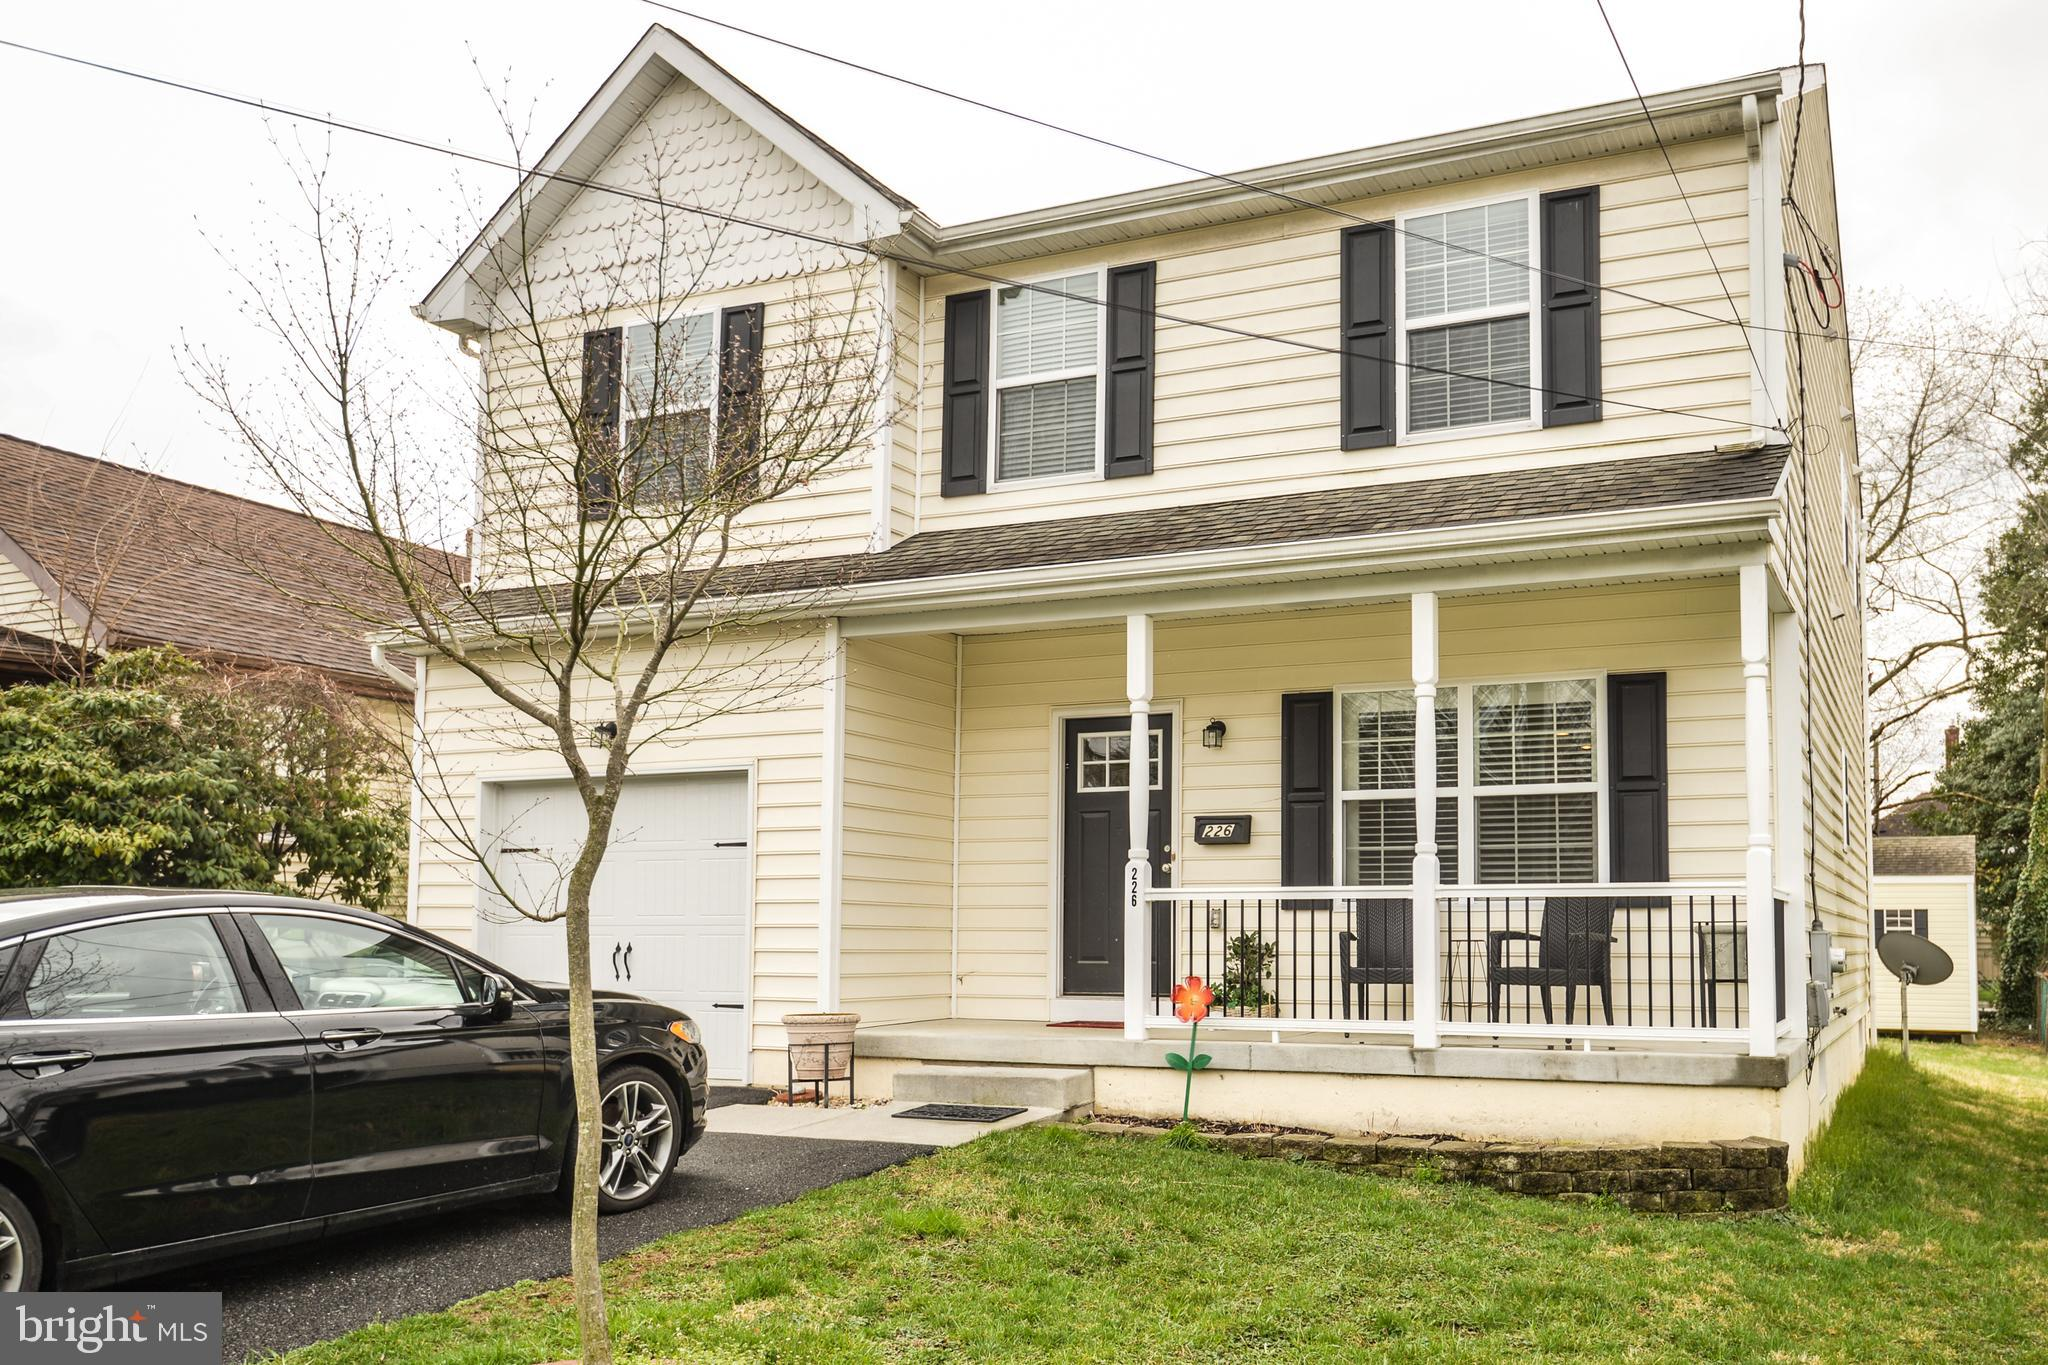 Welcome to this incredibly well maintained 2 story colonial conveniently located just off Boxwood Road.   Only built in 2014, this home has been lovingly cared for and gently used.   Compared to other new construction in the area, this home offers 2000 square feet of living space.  The basement was built with an egress window already installed & plumbed for a bathroom so it's ready to be finished for even more living space.  The first floor has gleaming hardwood floors throughout.   The kitchen is well appointed with loads of cabinets, a pantry, granite counters, and a peninsula with room for bar seating.   Opening up to the generously sized family room, this is the hub of the home.   The eating area has sliders which  bring you out to a paver patio  with a retractable awning for outdoor entertaining.  Out back the owner has put an oversized shed which has been perfectly matched to the house.  The upper level offers an oversized master bedroom with one of the largest walk in closets and a master bath .  The additional two bedrooms are also generous in size and share a hall bath.  The laundry has been placed on the upper level for total convenience.  The seller also had a gas line run for the dryer and both washer/dryer will remain with the property.    An expanded driveway adds off street parking for up to 4 cars.  Come check out this 7 year young house and you won't be disappointed.